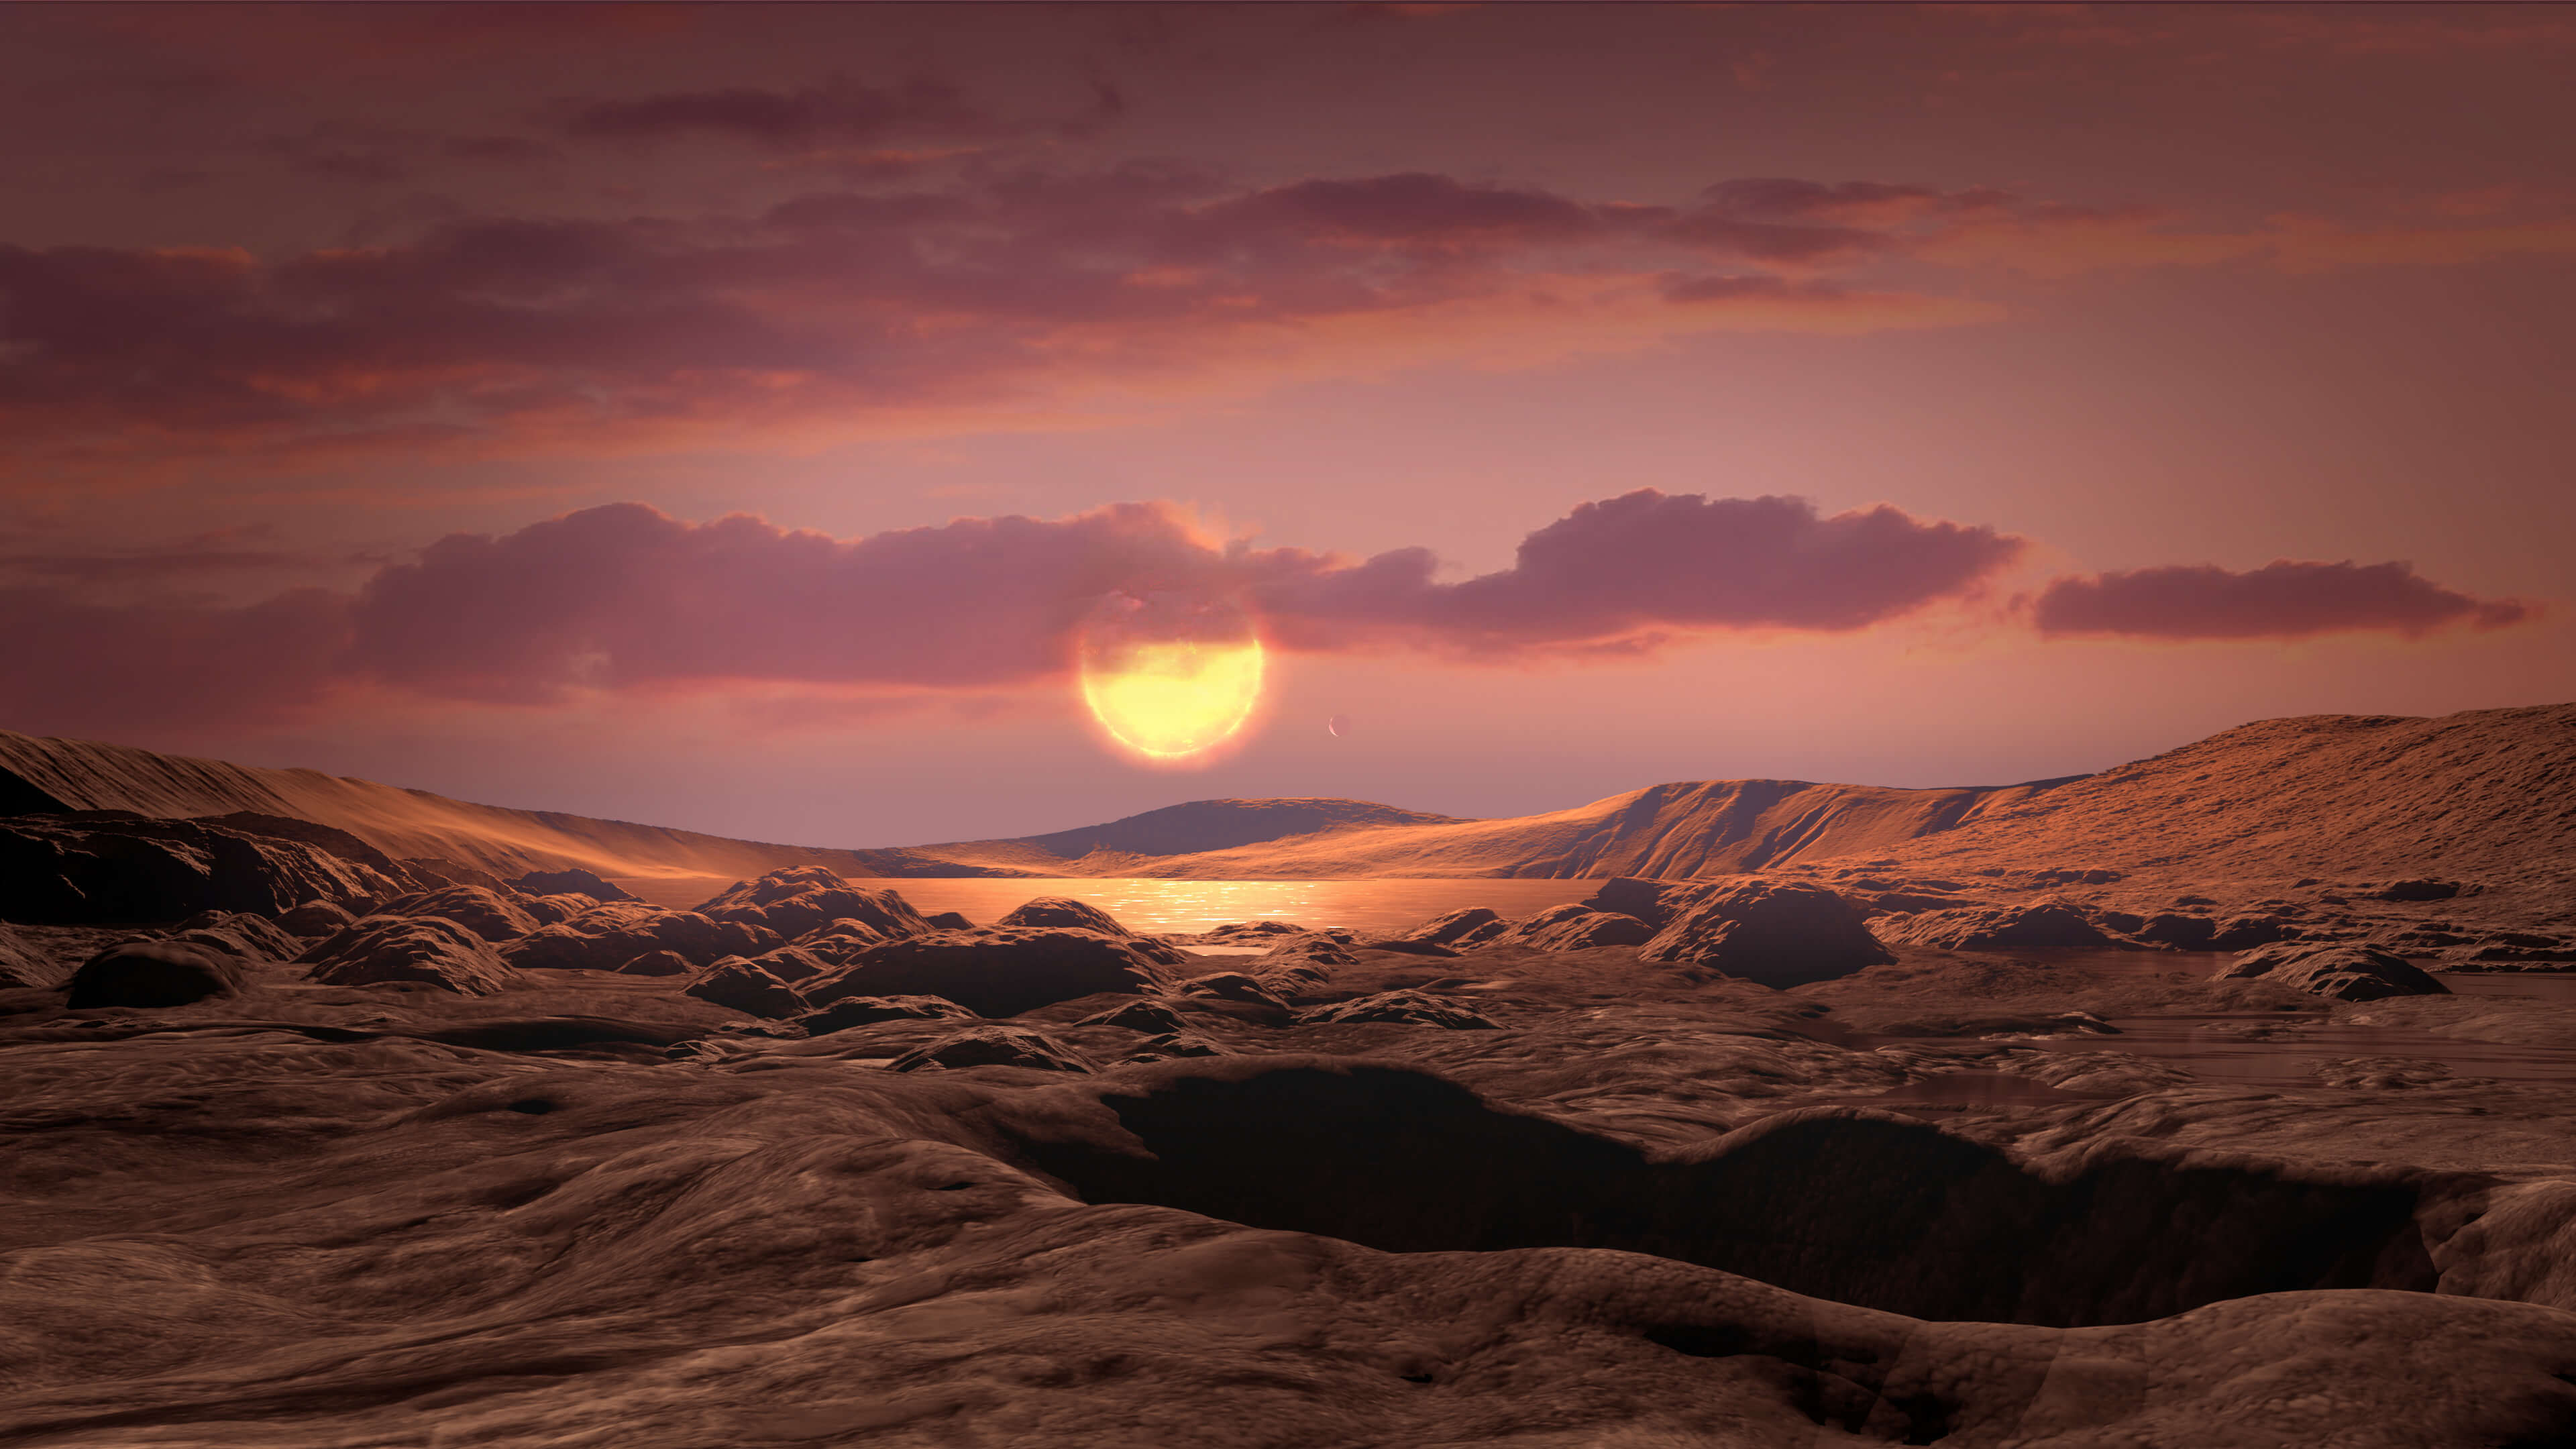 Earth-sized exoplanet discovered in old NASA Kepler data